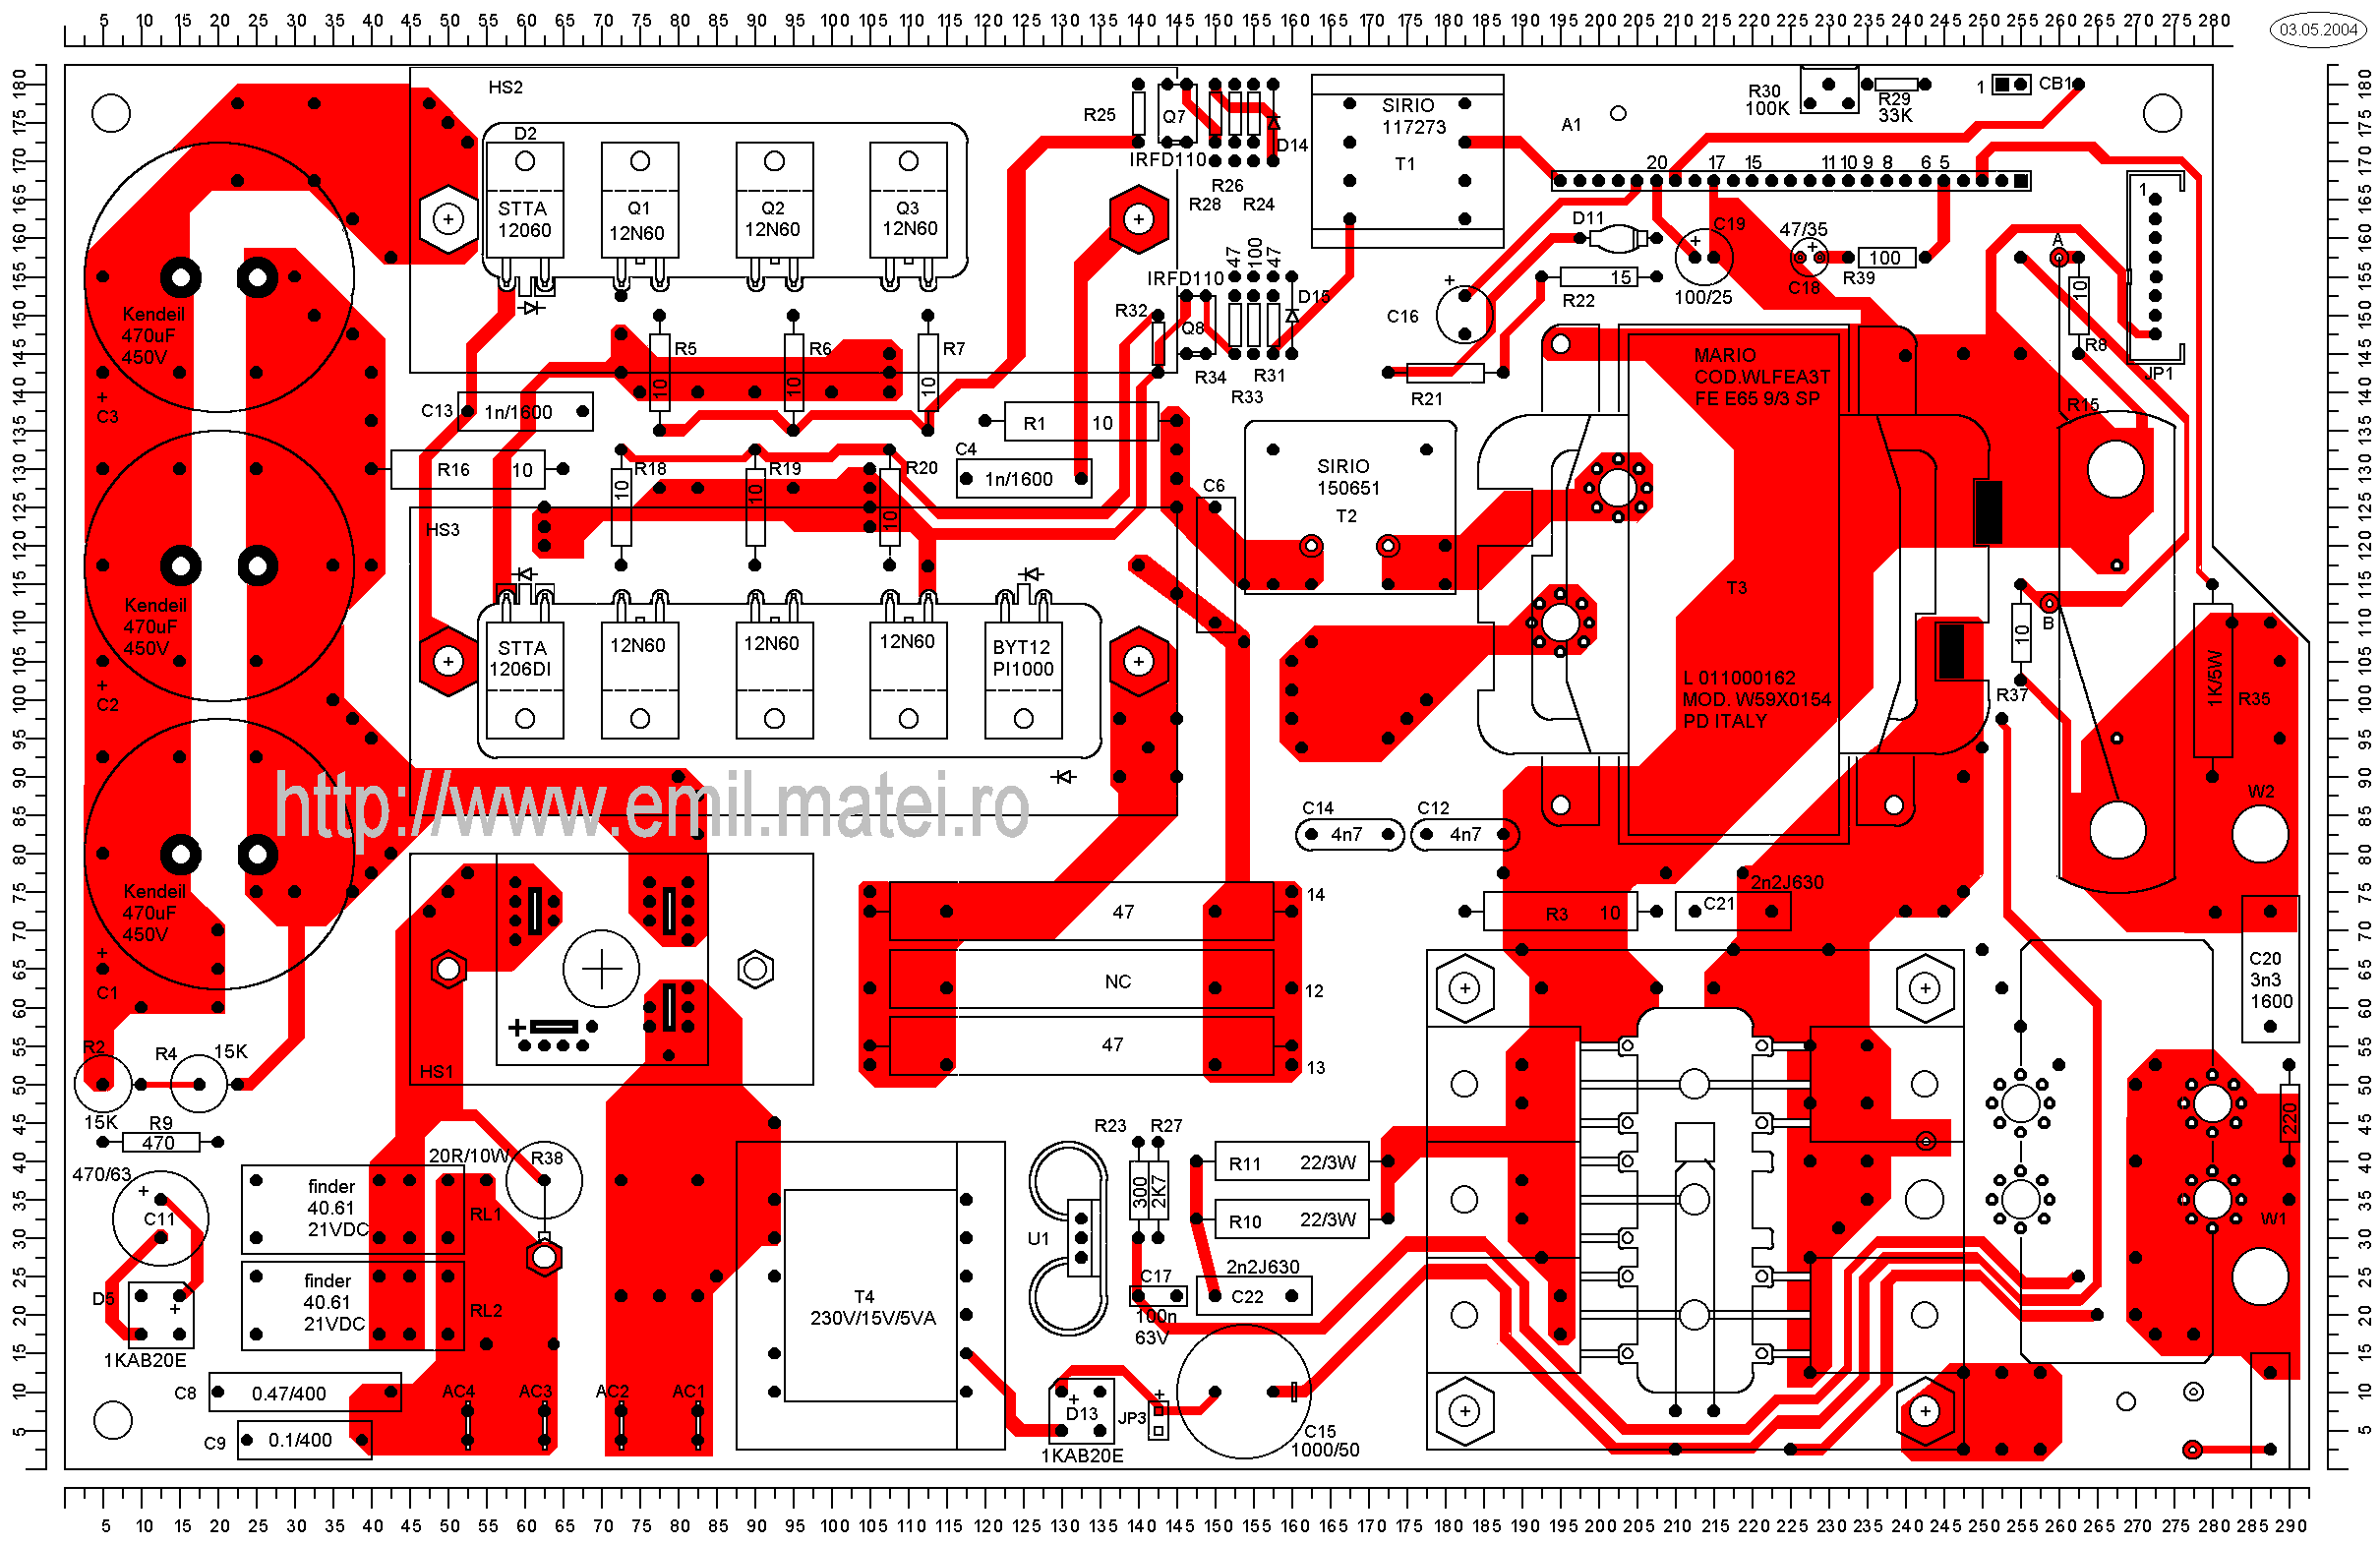 LINCOLN INVERTEC V140-S - PCB Layer 1